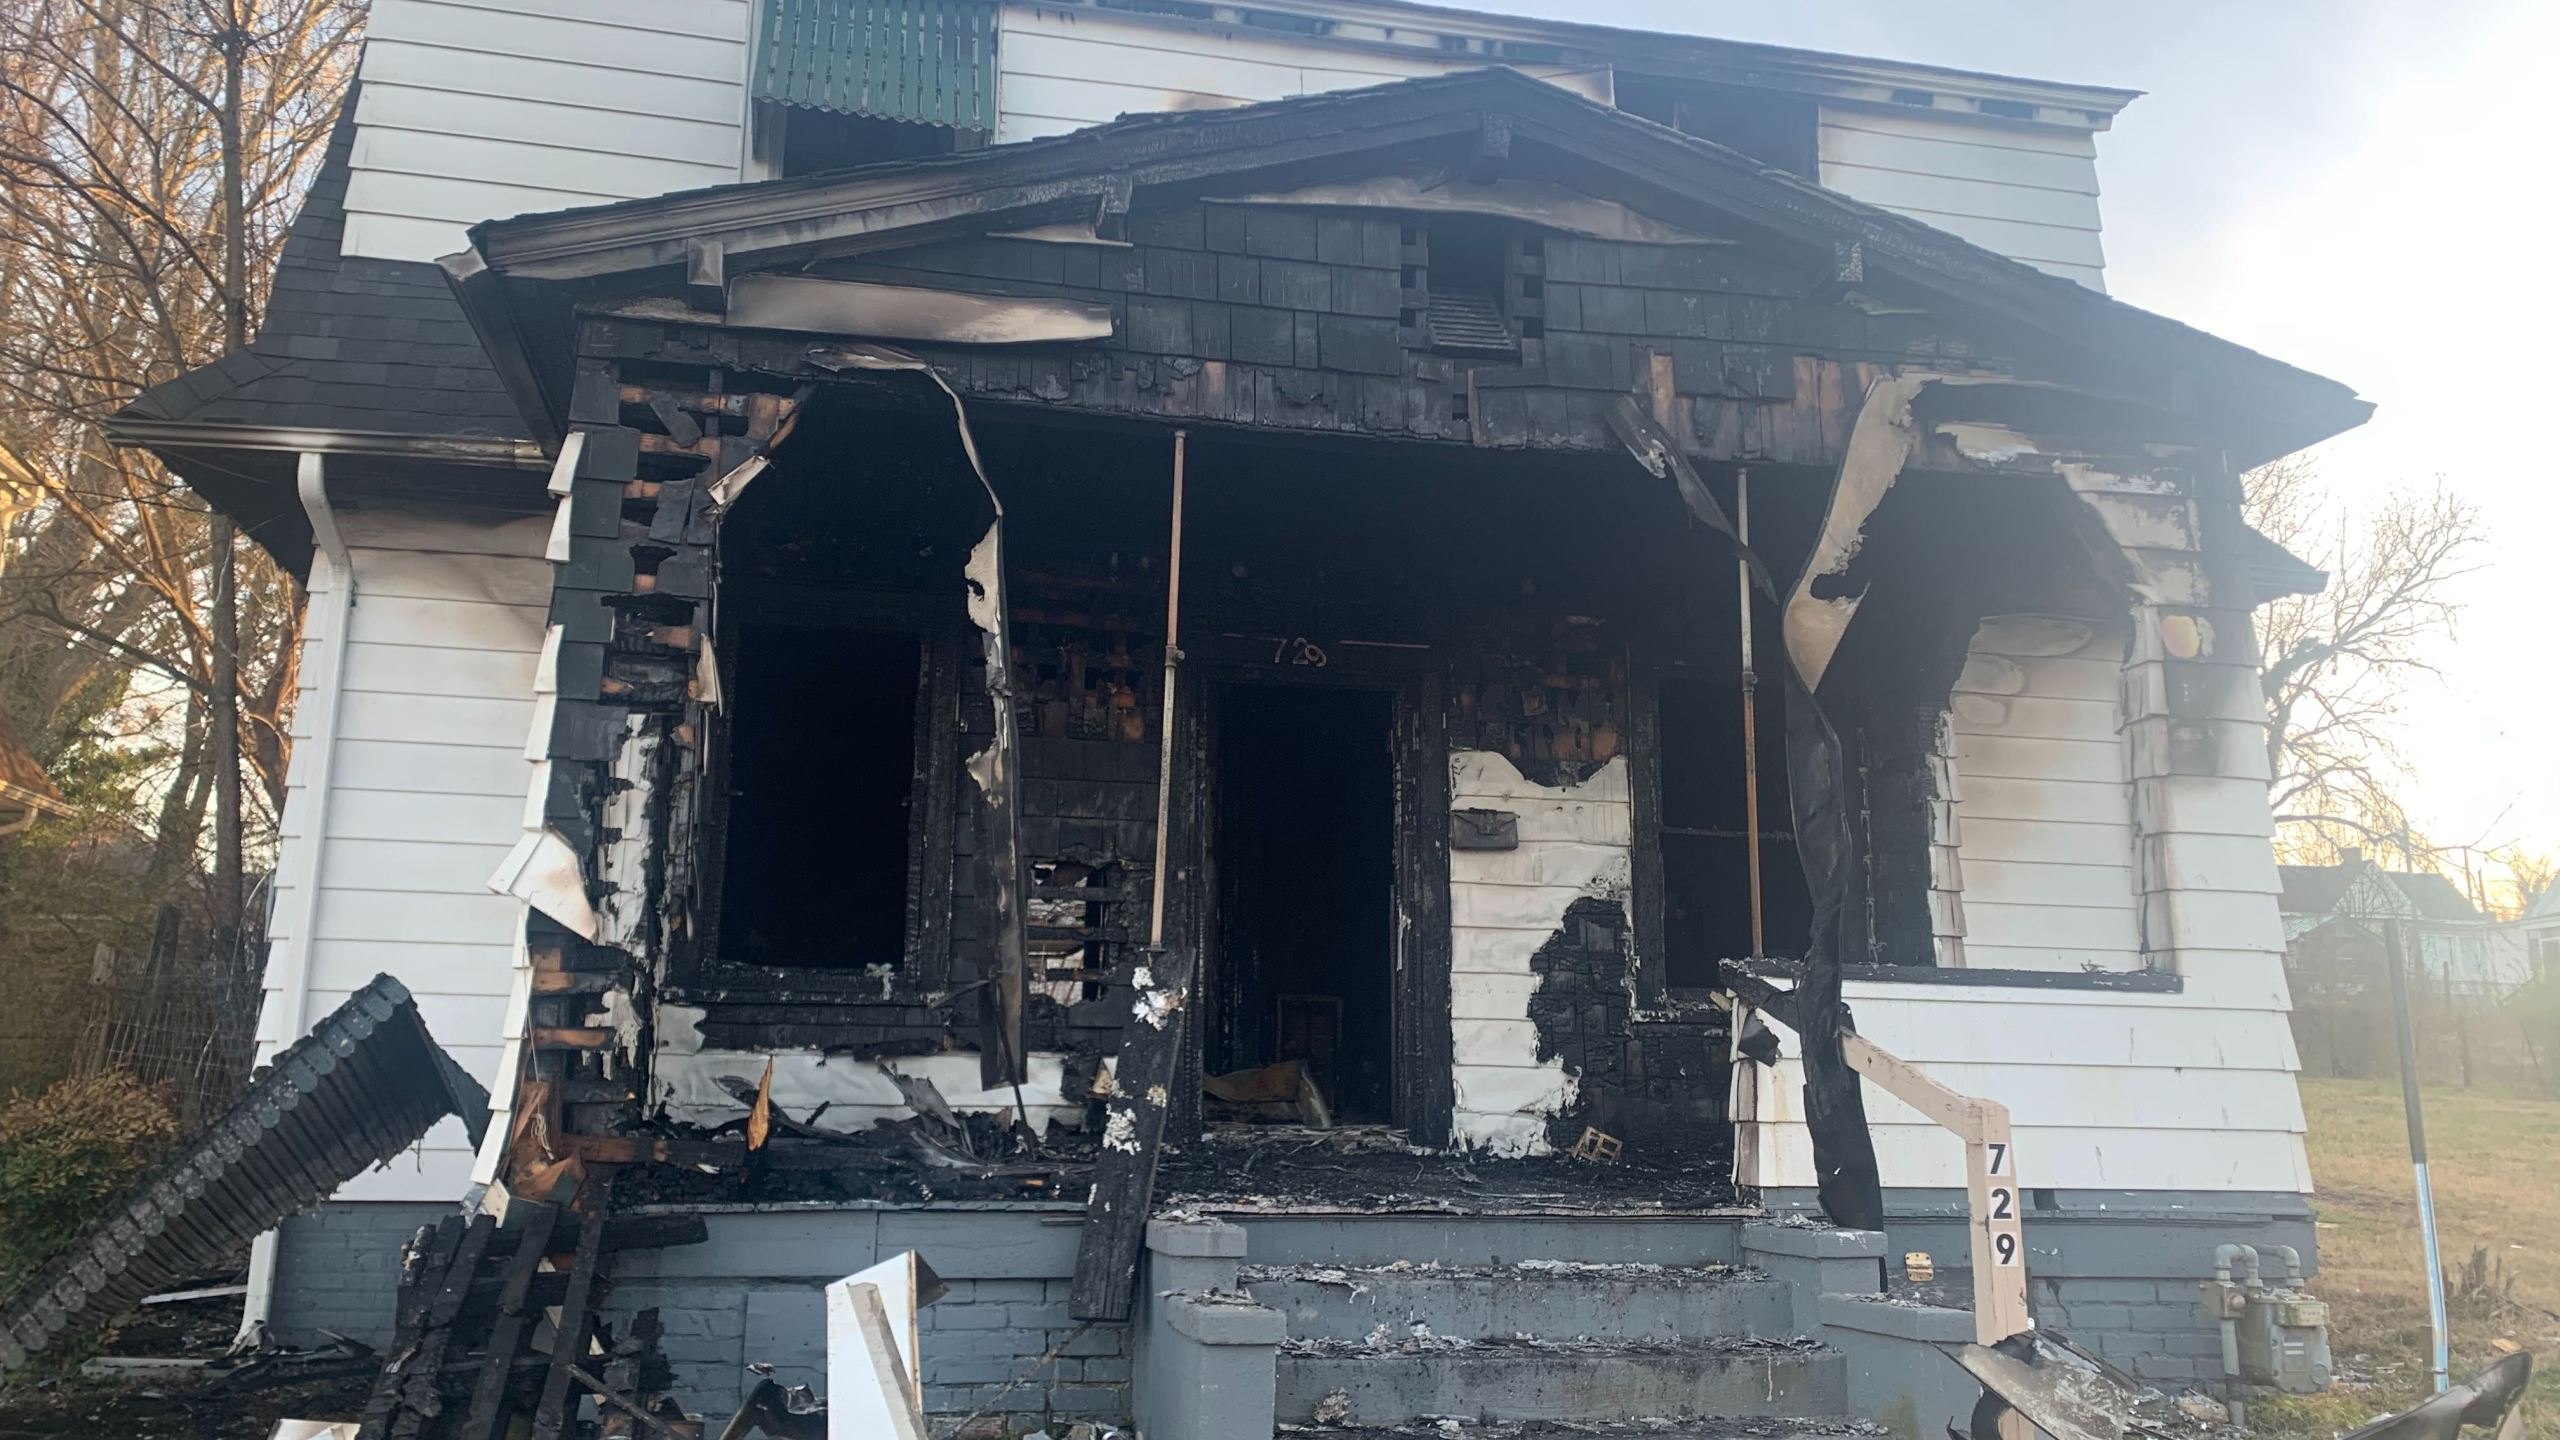 This home in at 729 Temple Avenue in Danville caught fire after a candle was left unattended, the Danville Fire Department said. (Photo: Eric Pointer/WFXR News)